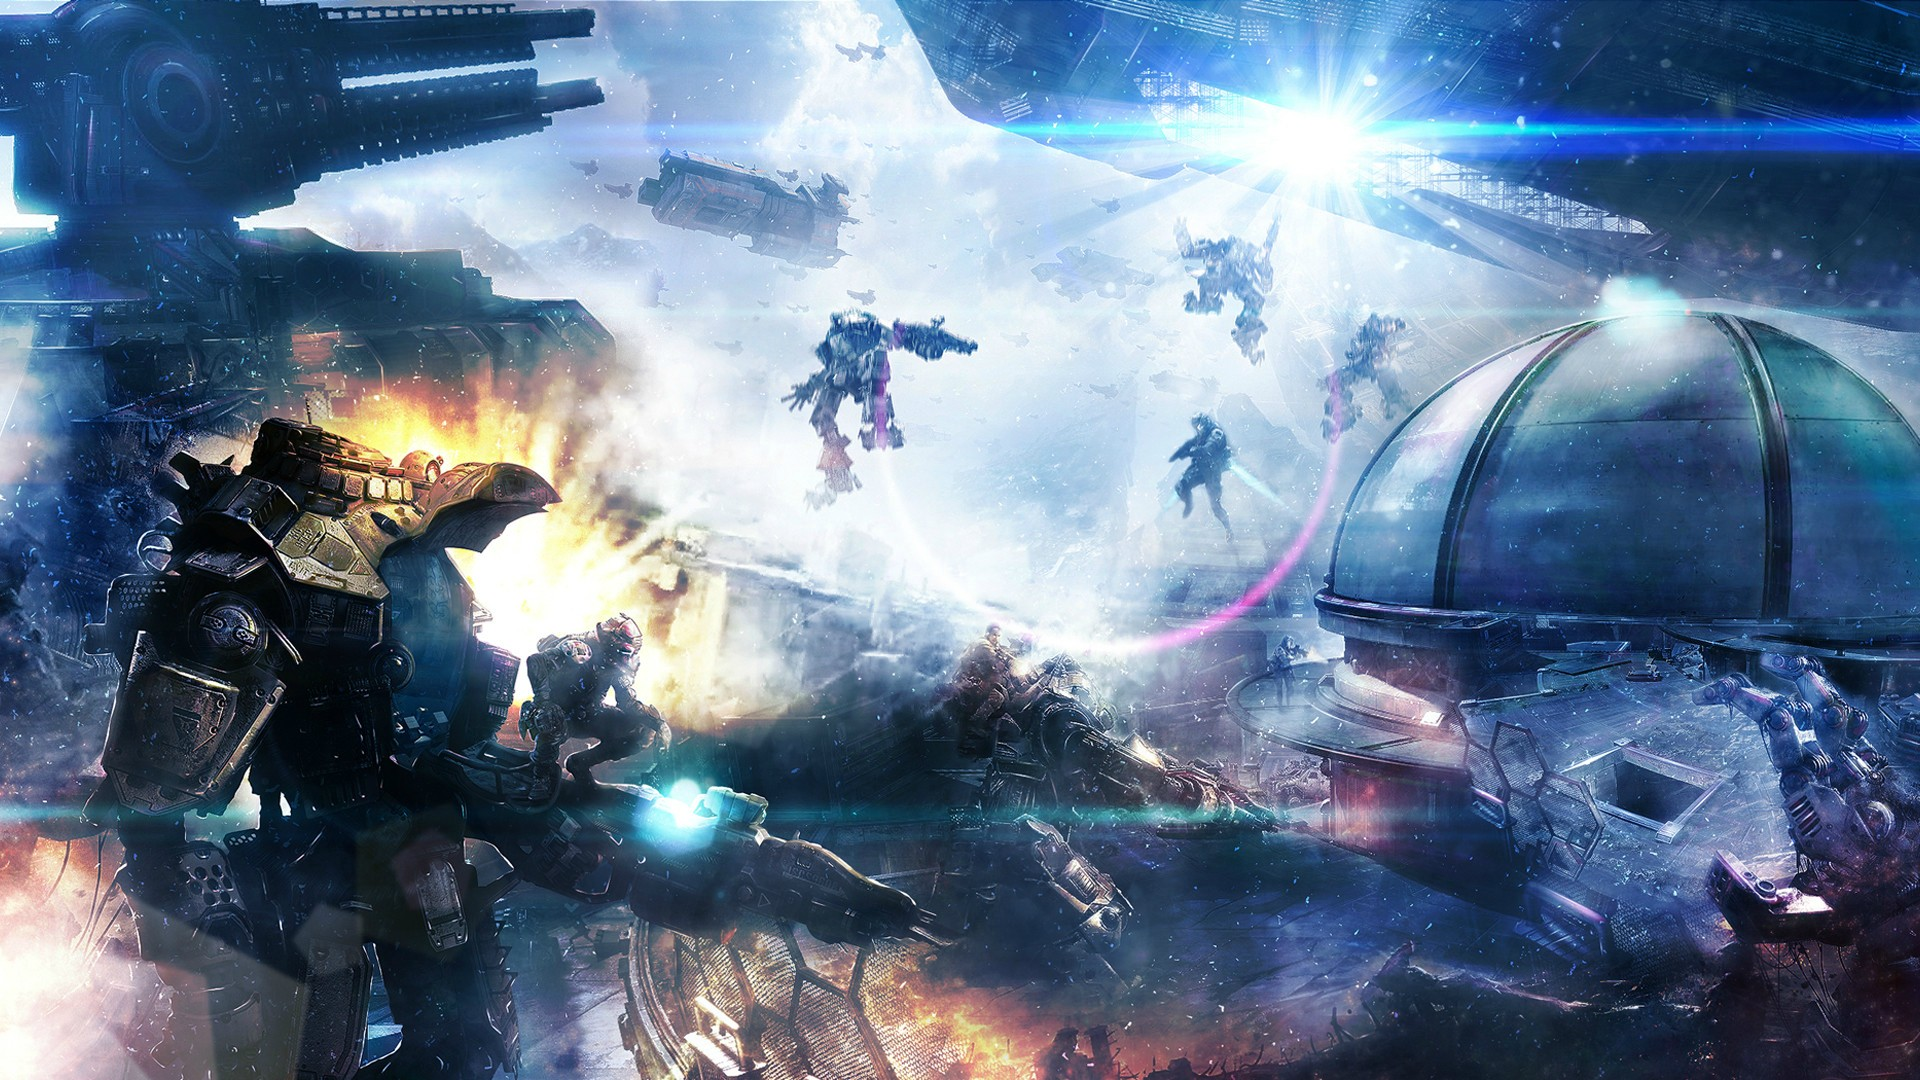 Touhou Fall Wallpaper Some Beautiful Titanfall Hd Wallpapers 2015 All Hd